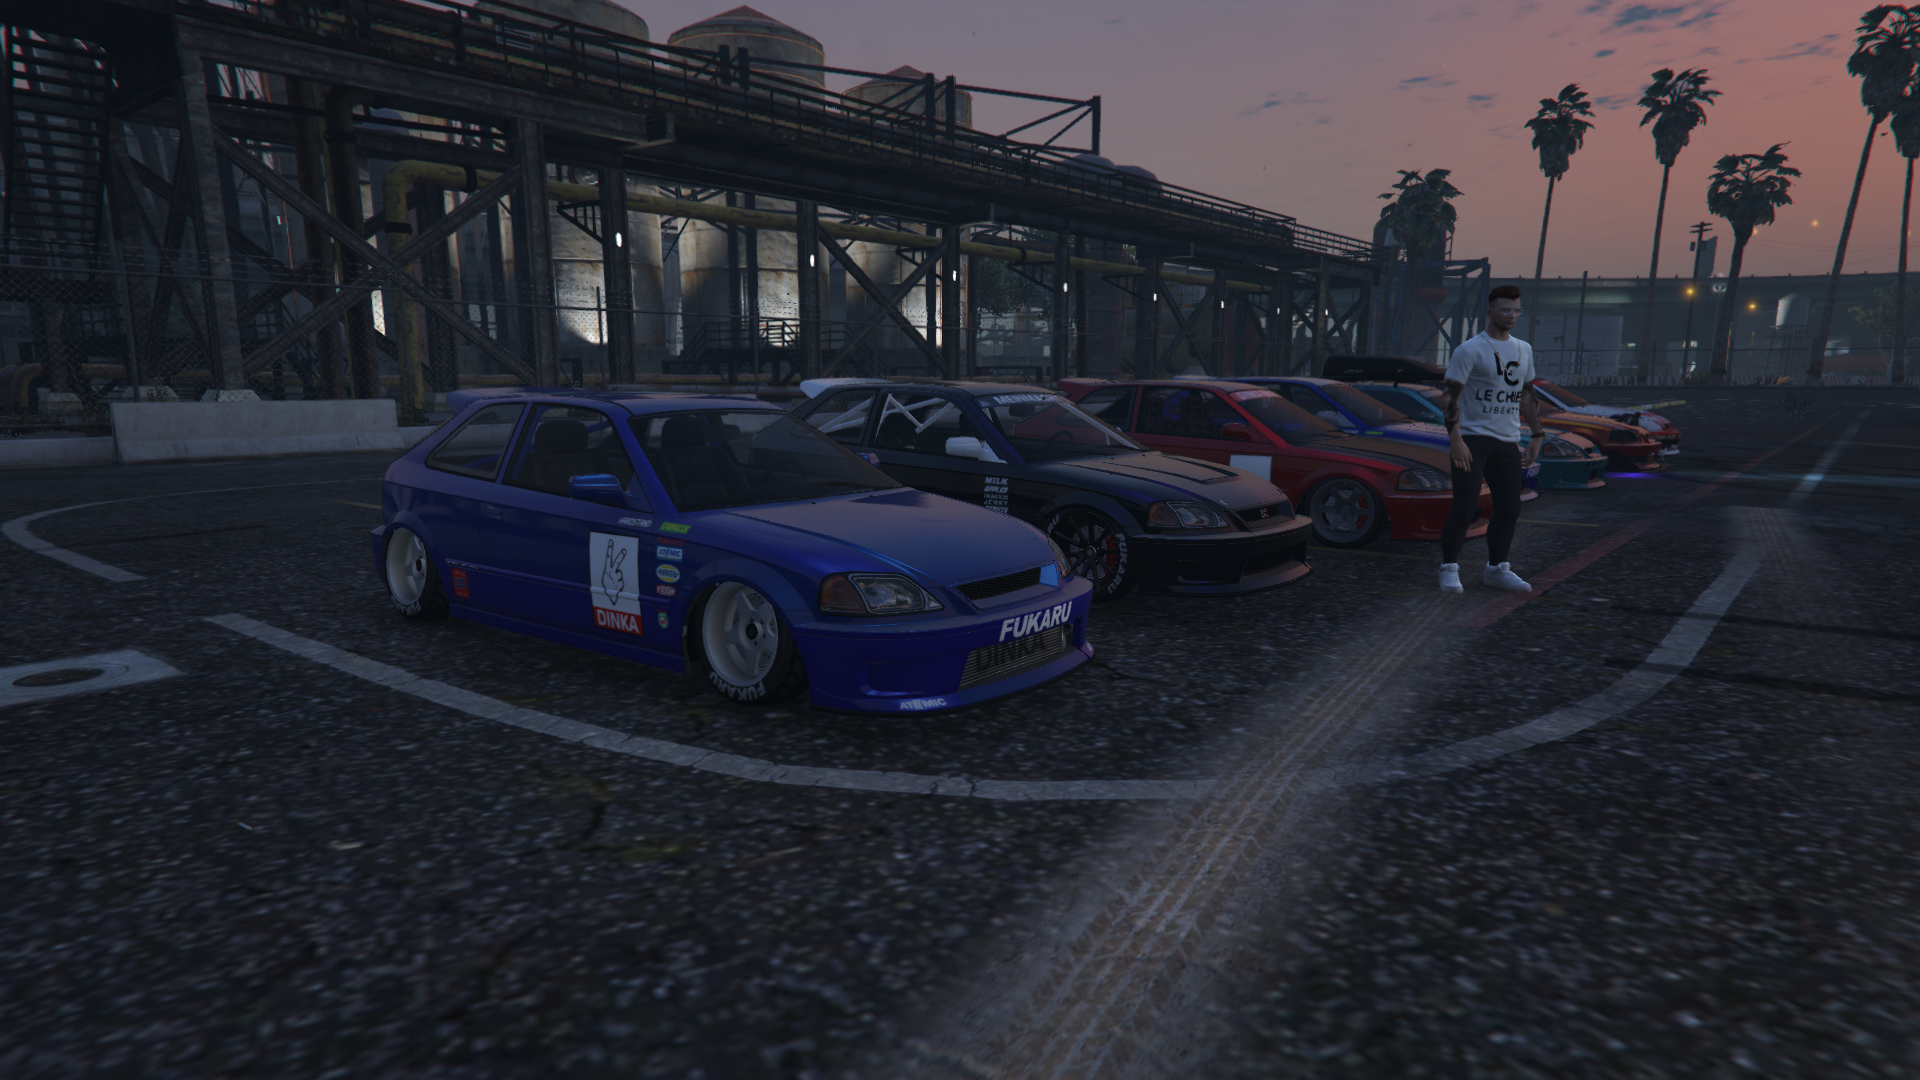 Grand_Theft_Auto_V_Screenshot_2020.08.22